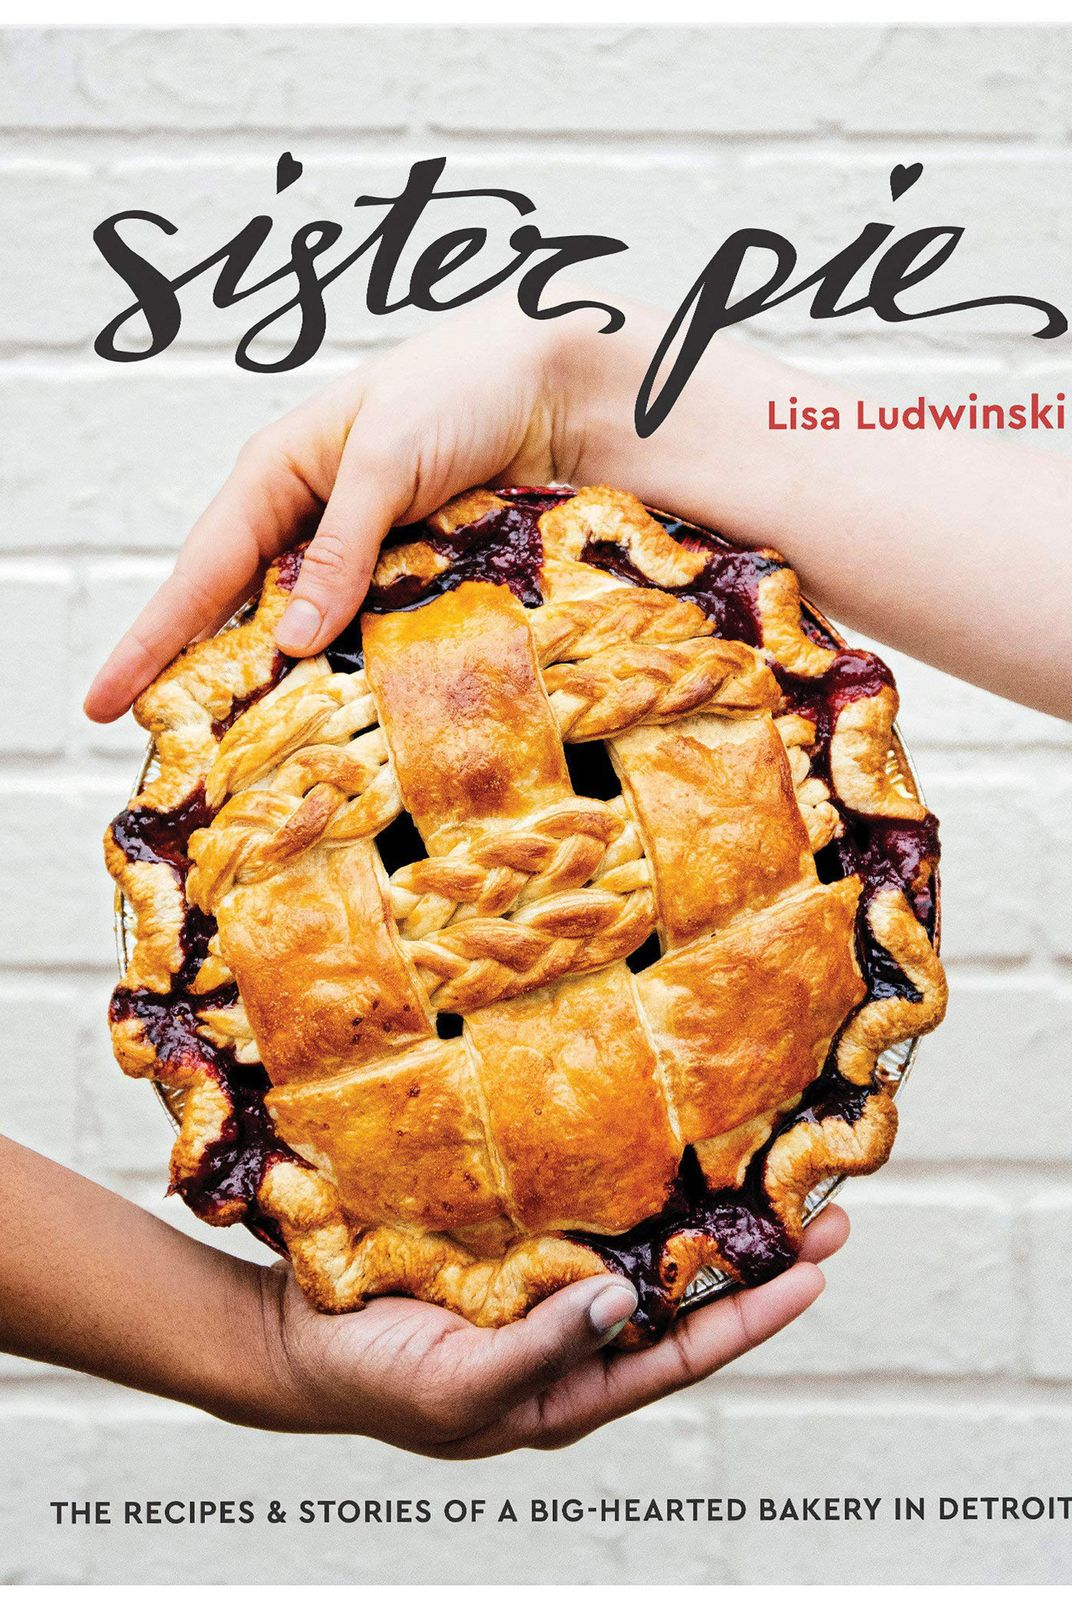 4. <em>Sister Pie: Recipes and Stories from the Detroit Bakery</em>, by Lisa Ludwinski